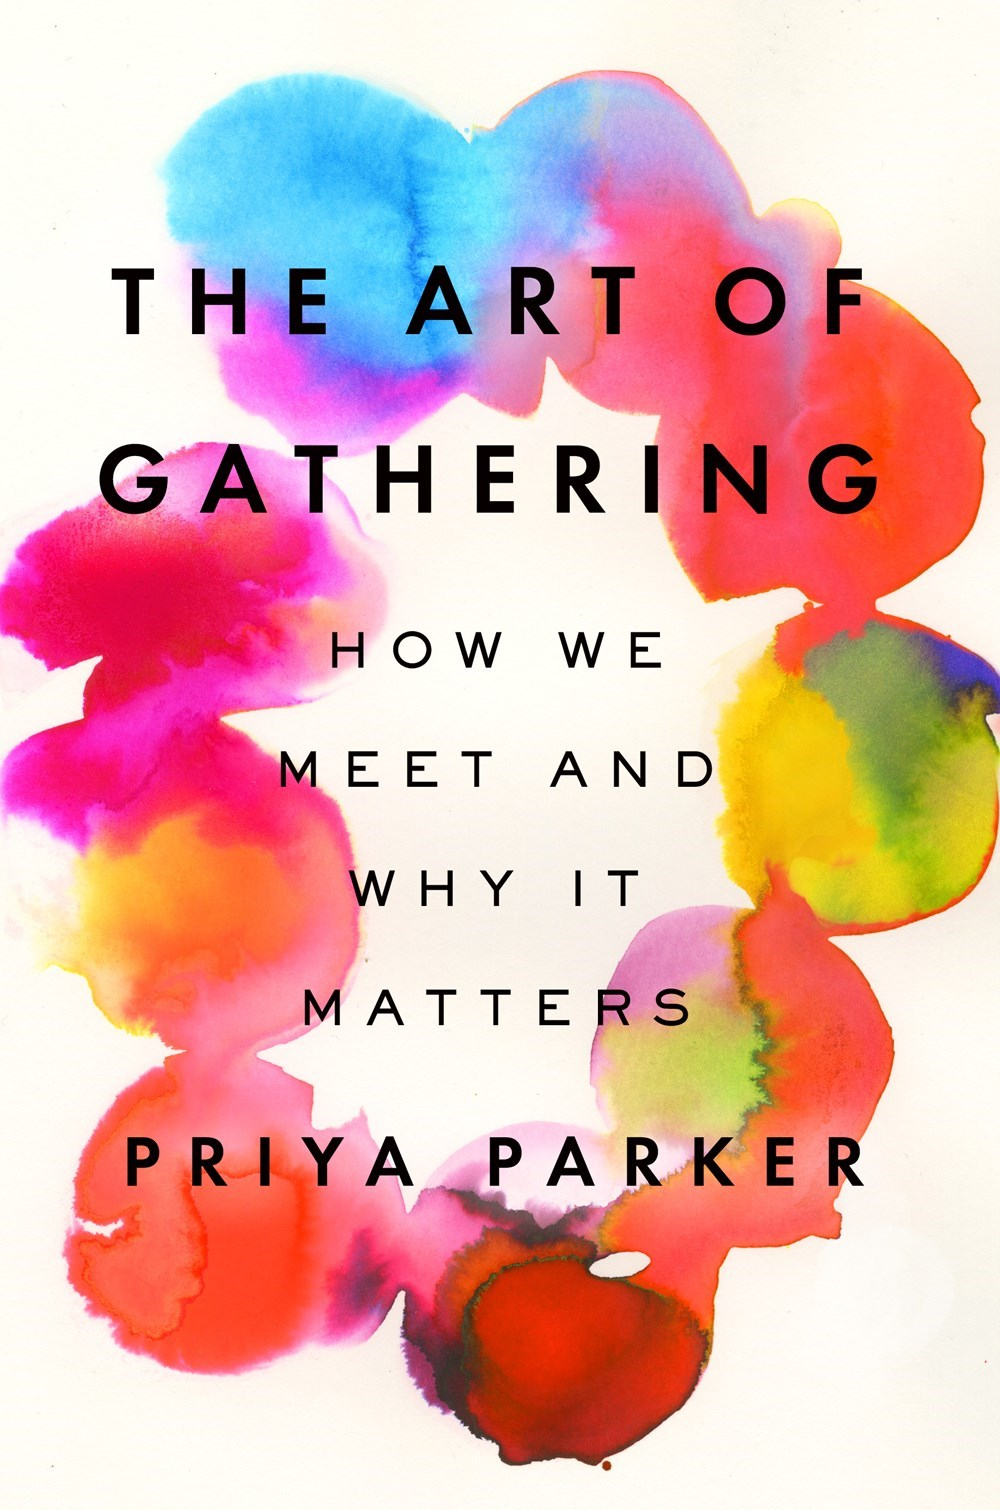 Art of Gathering How We Meet and Why It Matters